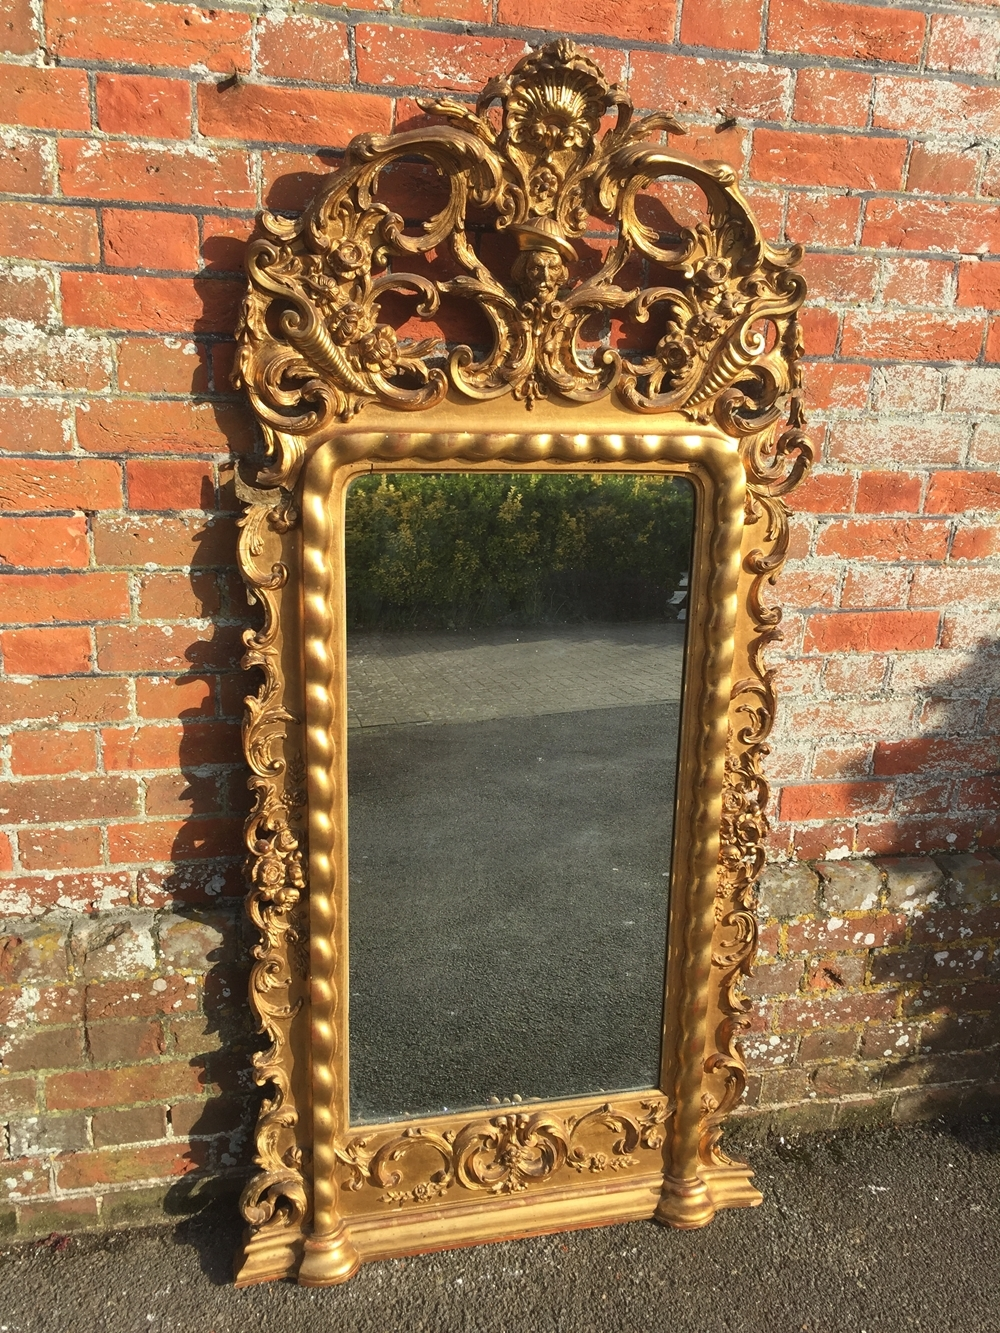 Large Overmantle Mirrors Uk Antique Overmantle Mirrors For Sale In Antique Large Mirrors For Sale (Image 13 of 15)